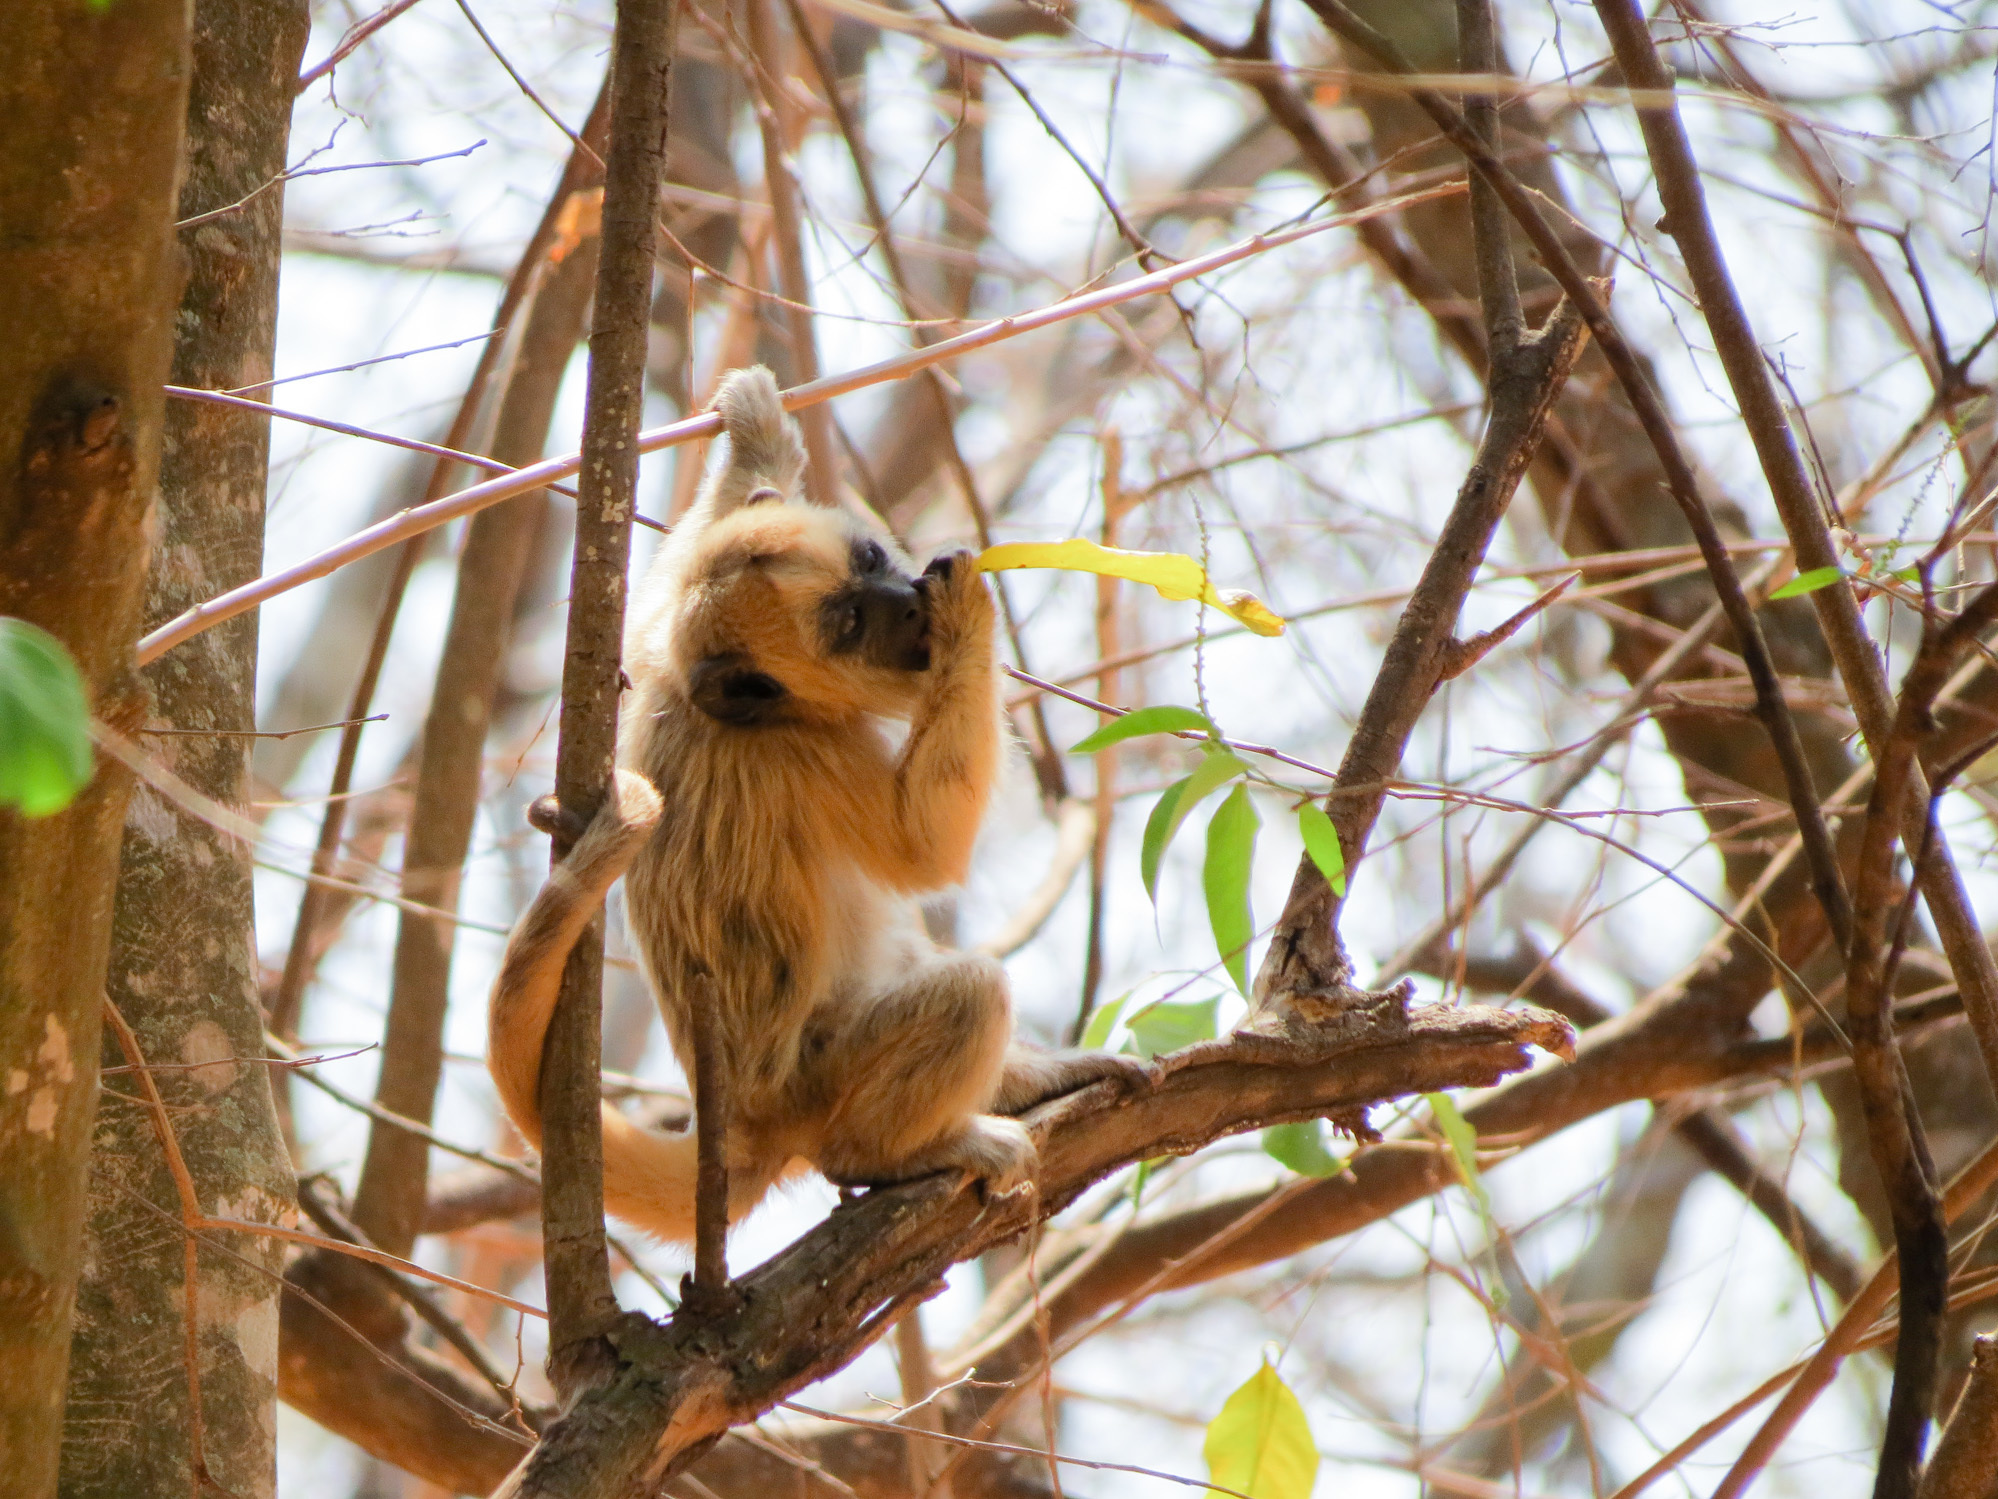 Brazil's Expanding Yellow Fever Outbreak Started With Monkeys